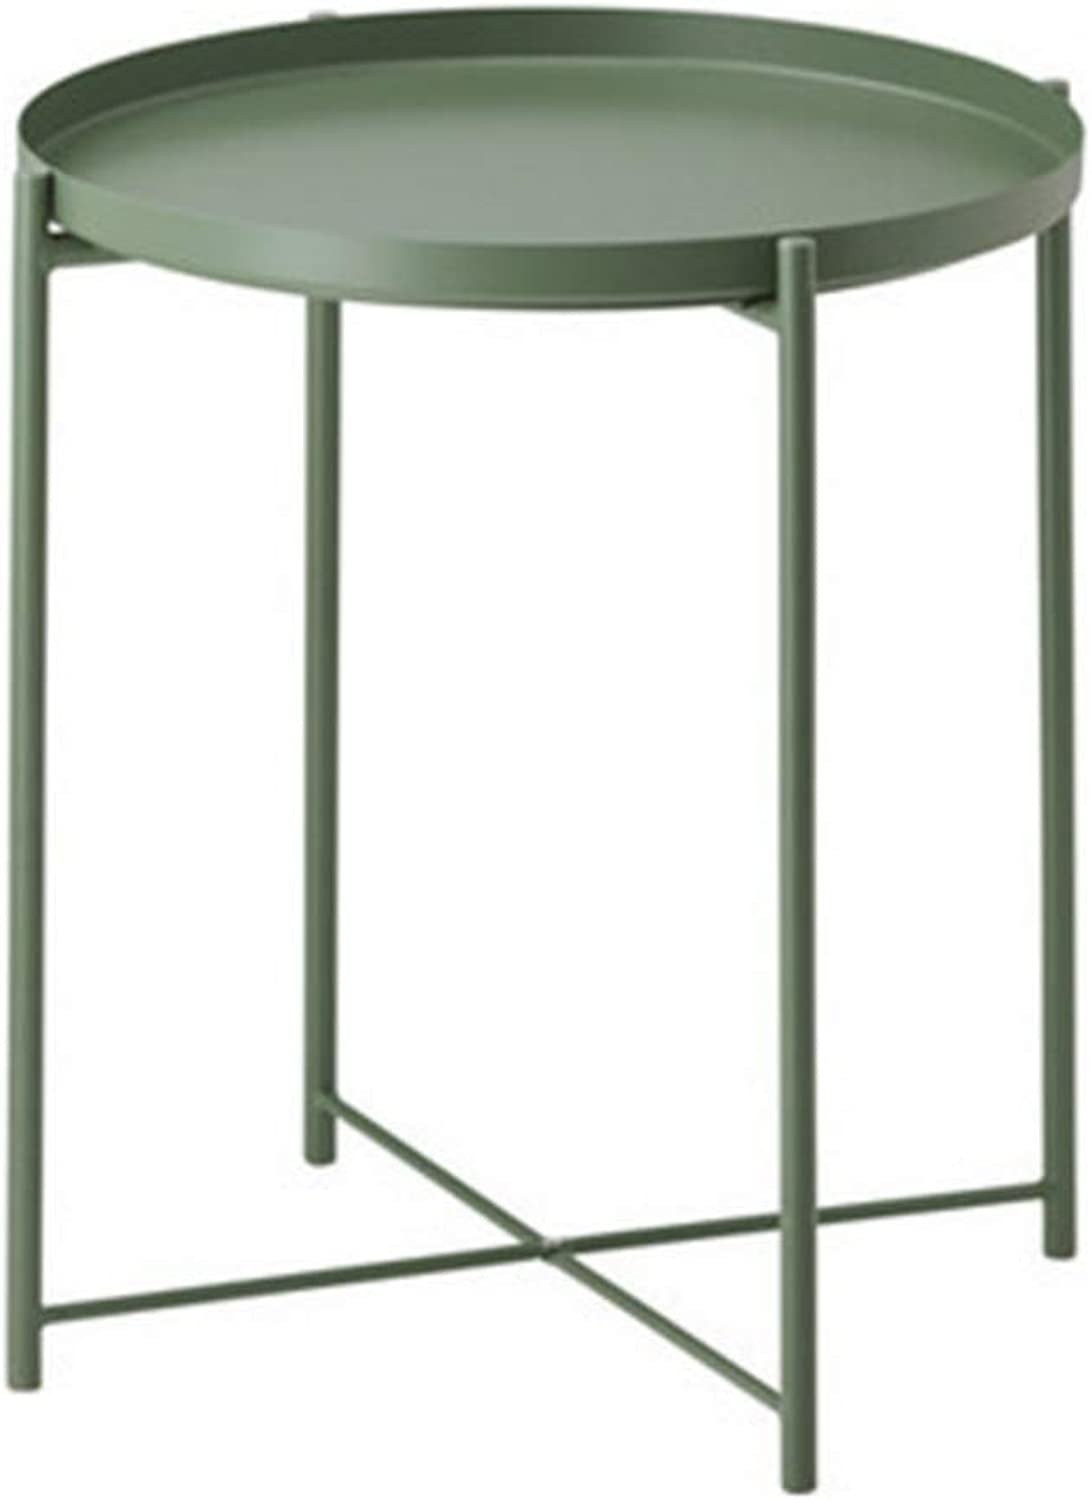 NAN Both Sides Top Available, Small Modern Metal End Table Side Table Coffee Table - Easy Assembly Multi-use Folding Tables (color   Green)